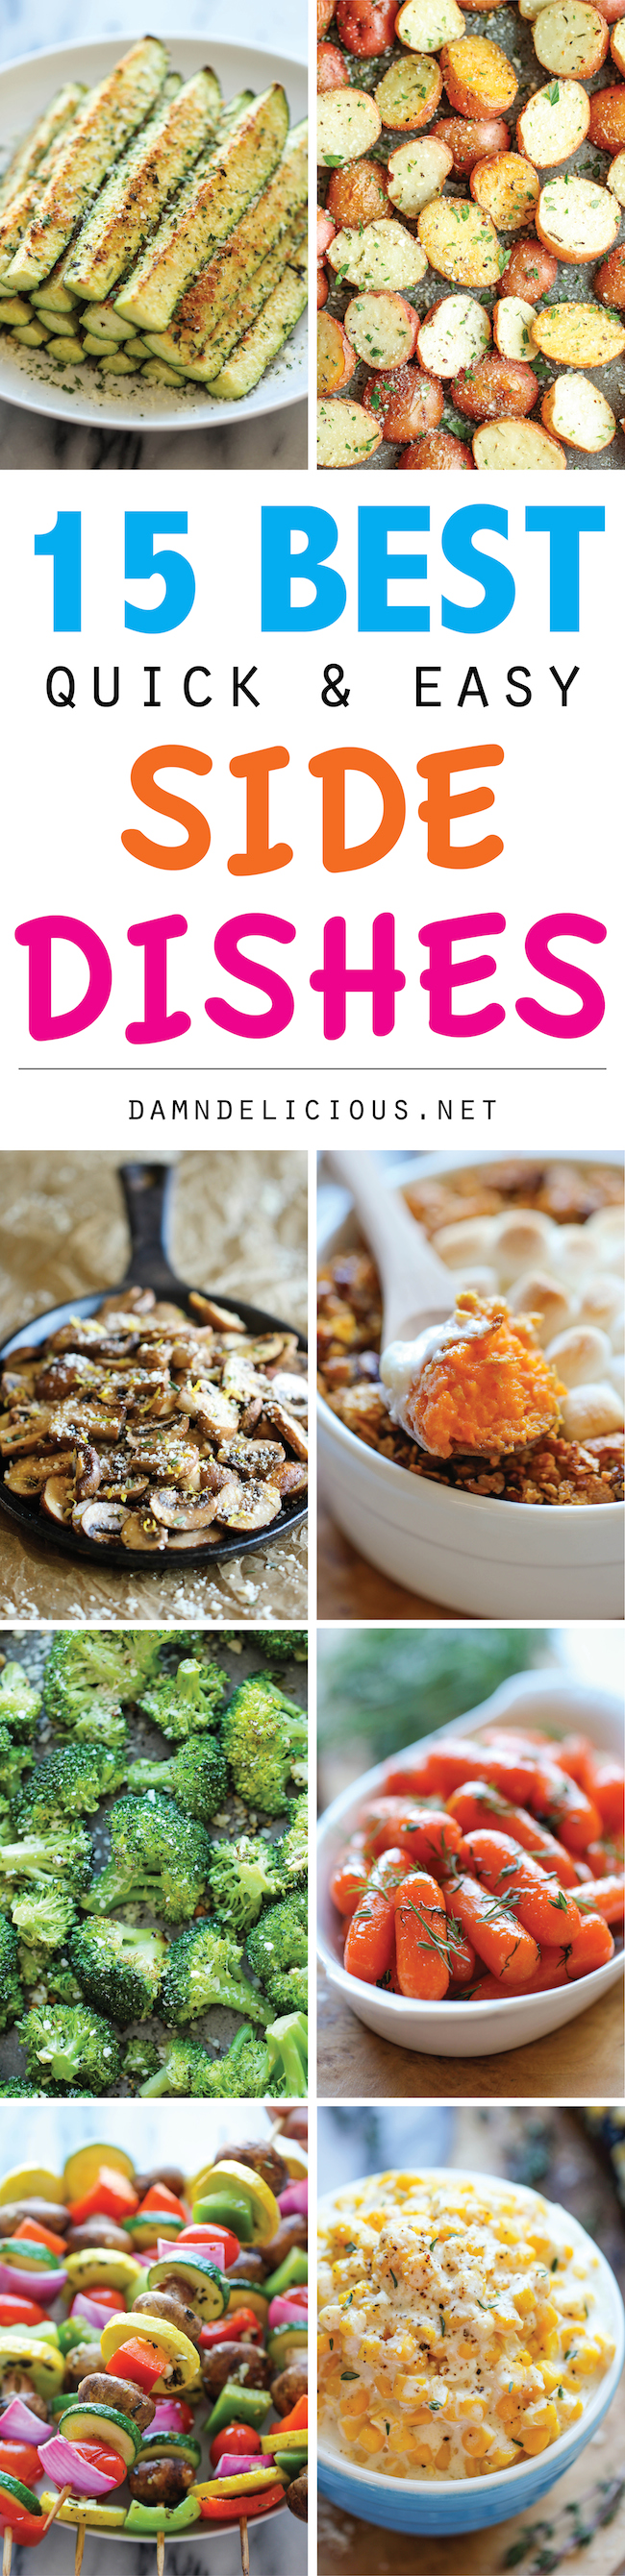 Side dishes recipes easy